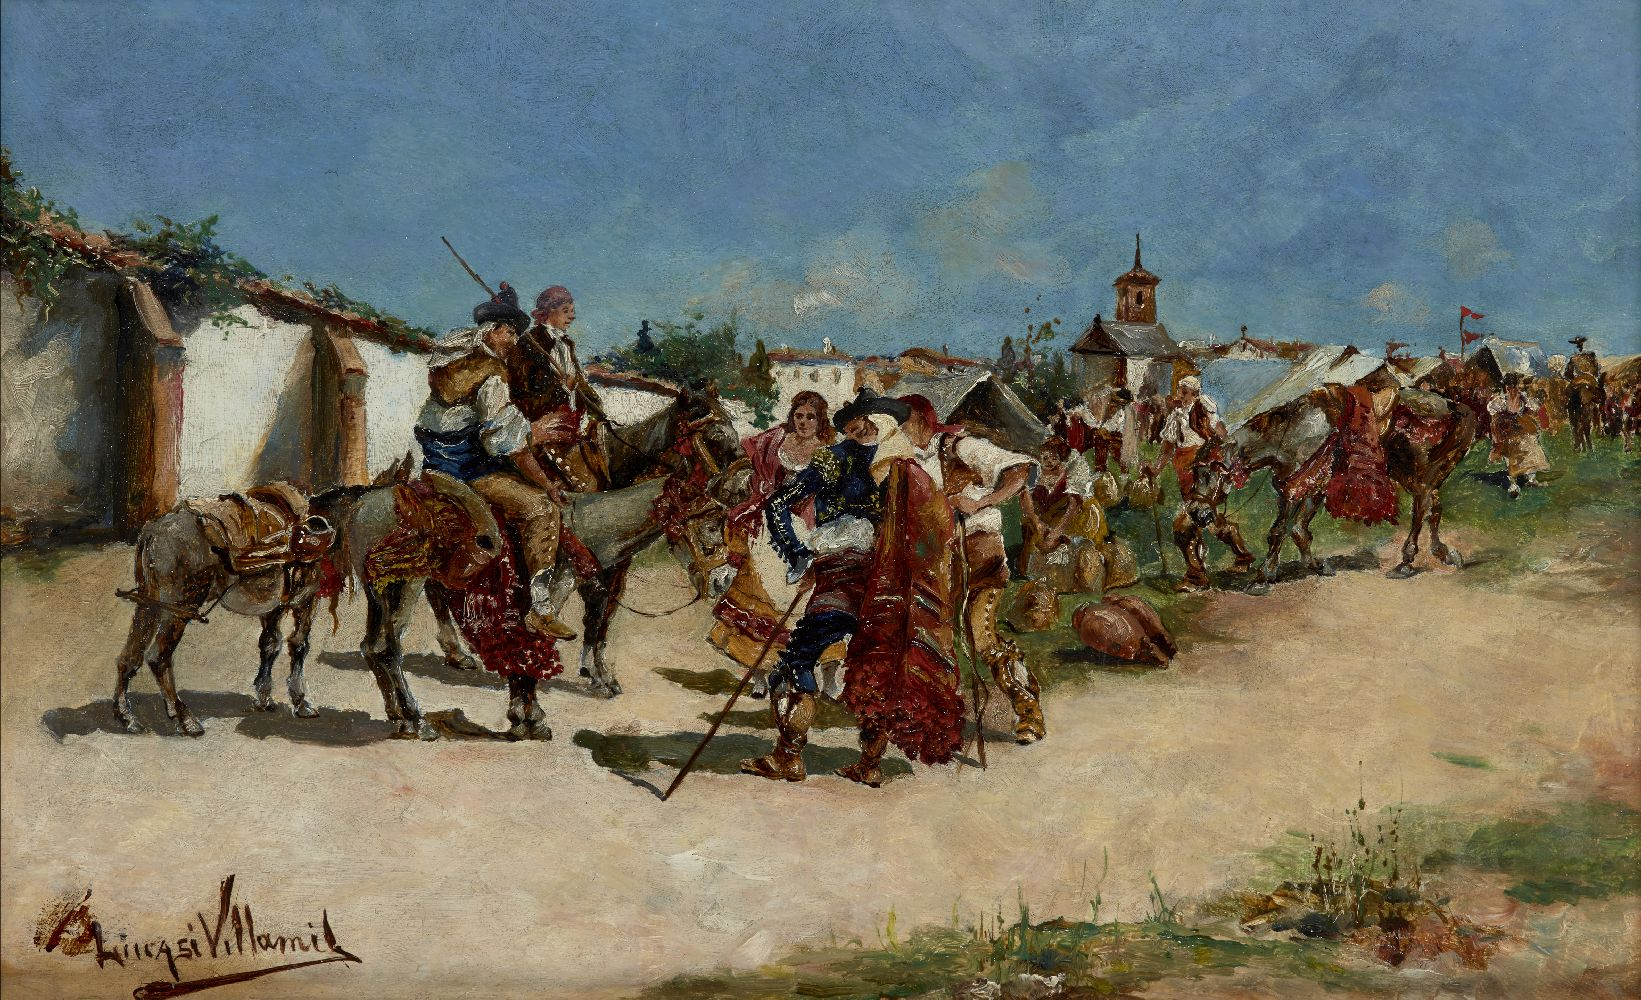 Eugenio Lucas Villamil, Spanish,1858-1918- People preparing for a festival outside a village; oil on